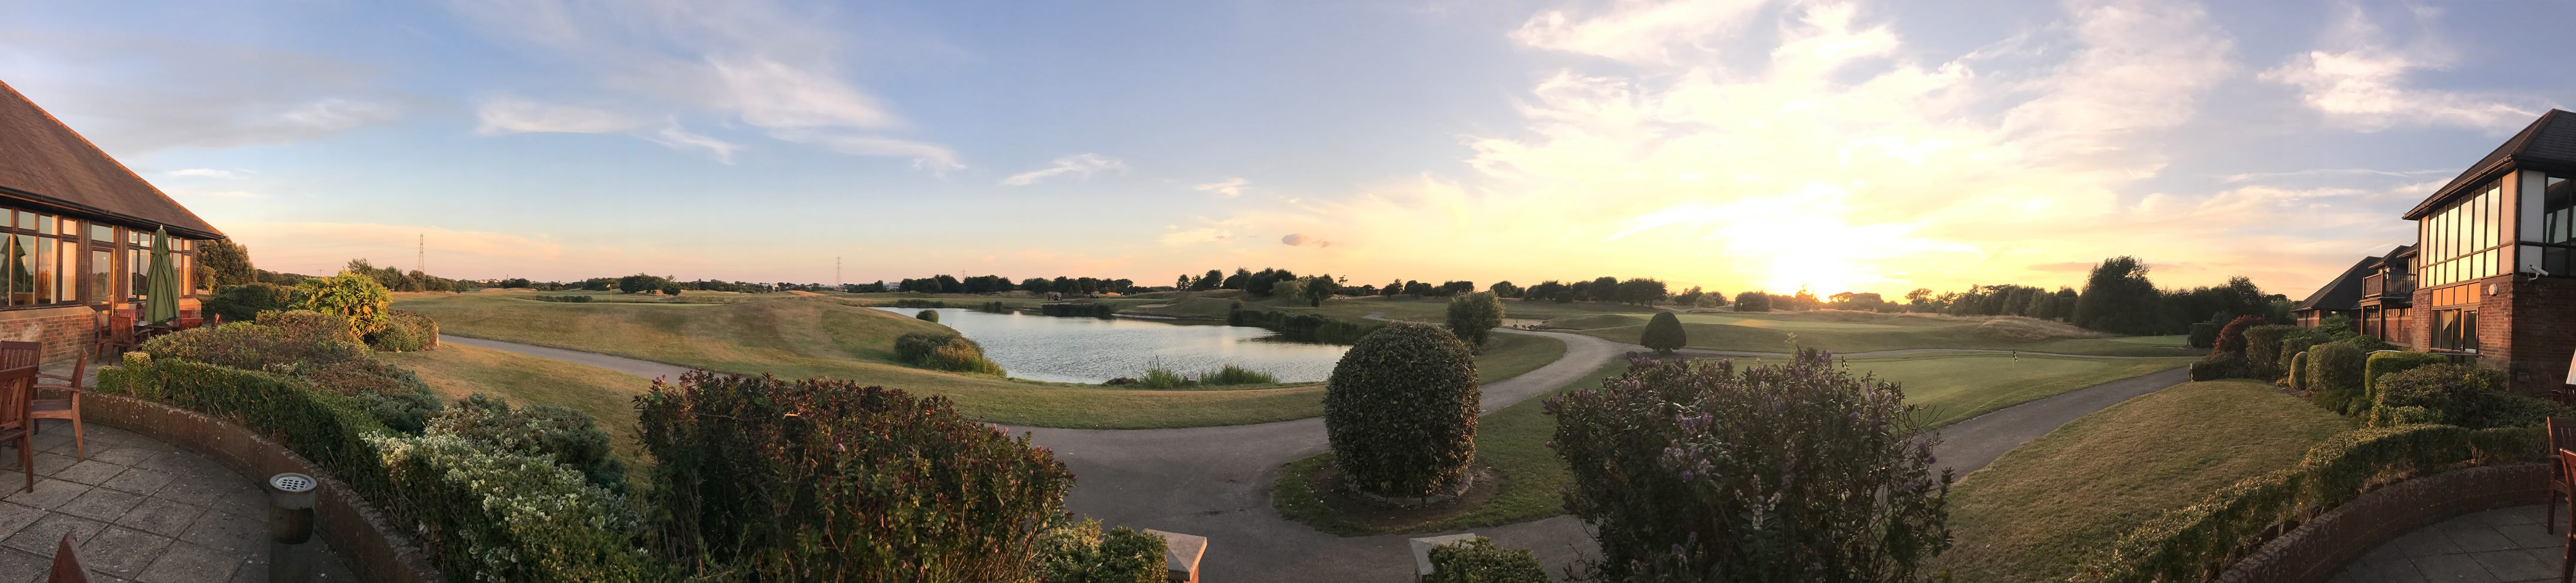 Cams Hall Estate Golf Club for hire